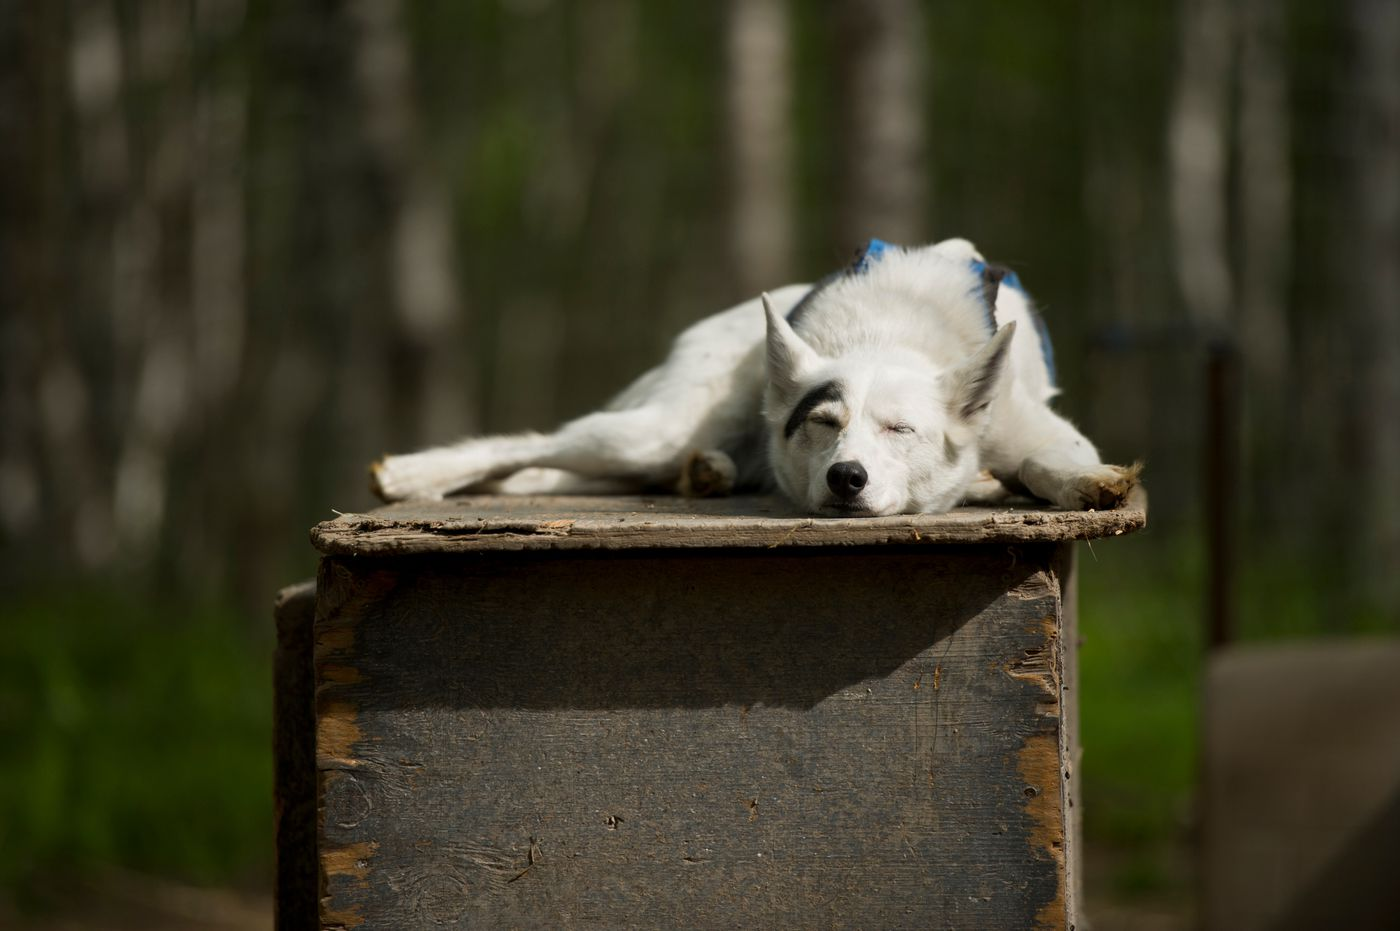 Juno rests on top of a dog house on Thursday, May 21, 2015. The dog is one of 35 dogs at Sled Dog Sanctuary along the Parks Highway near Talkeetna.